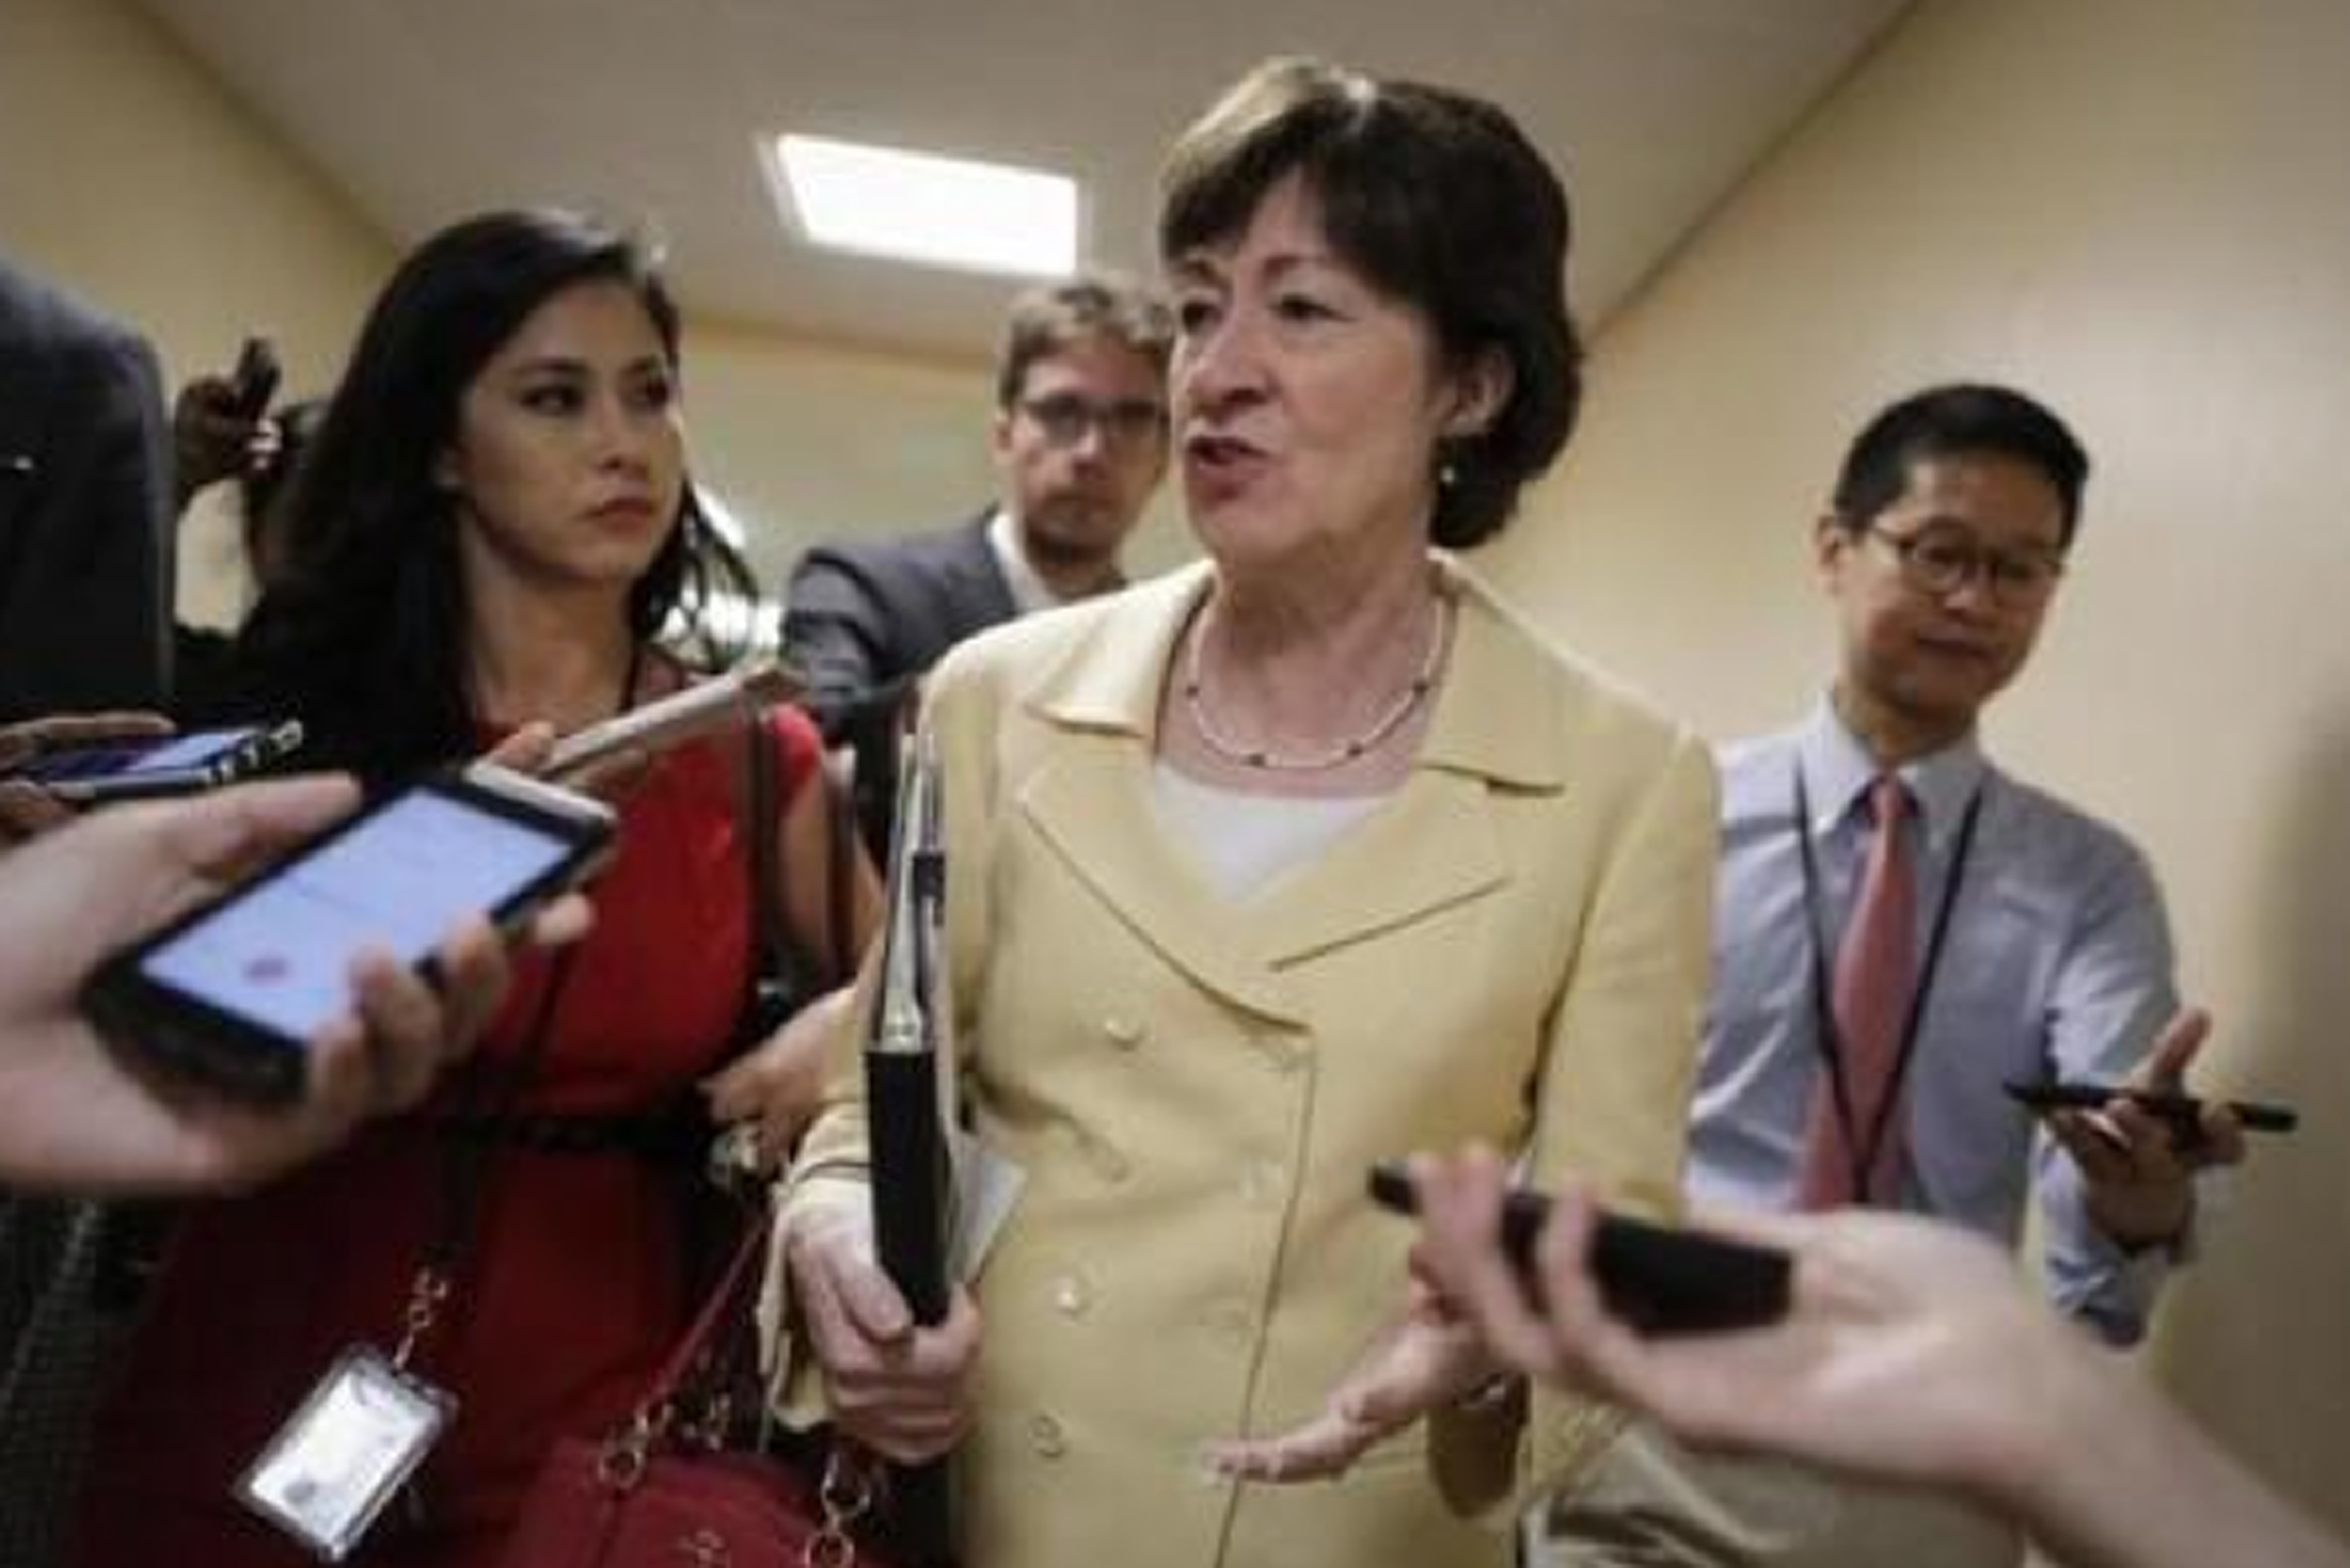 Republican Maine U.S. Senator Susan Collins speaks to reporters last week in Washington. Collins has announced her opposition to the Senate Republican's health care revision proposal. AP WIREPHOTO/J. Scott Applewhite